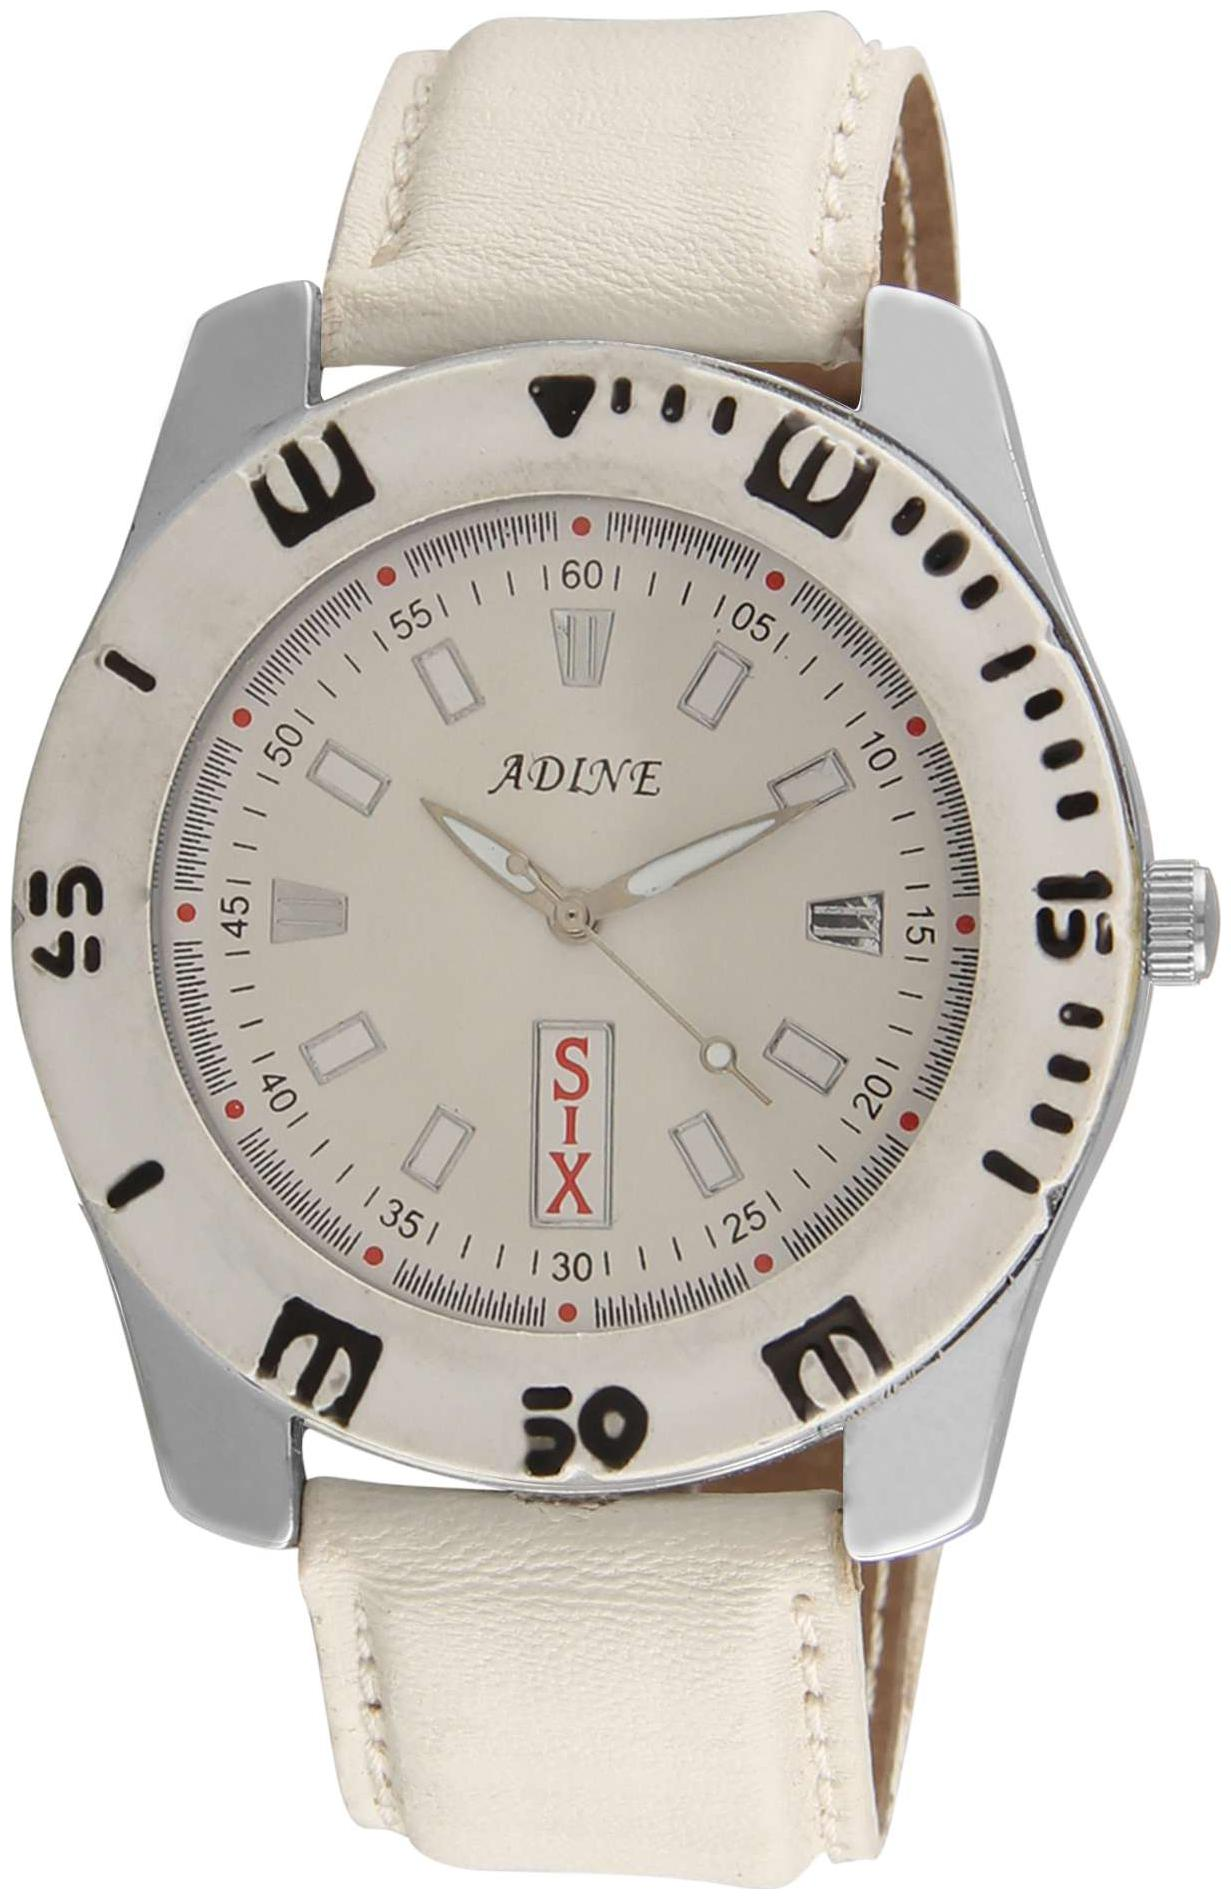 Adine White dial analog watch for men by R S